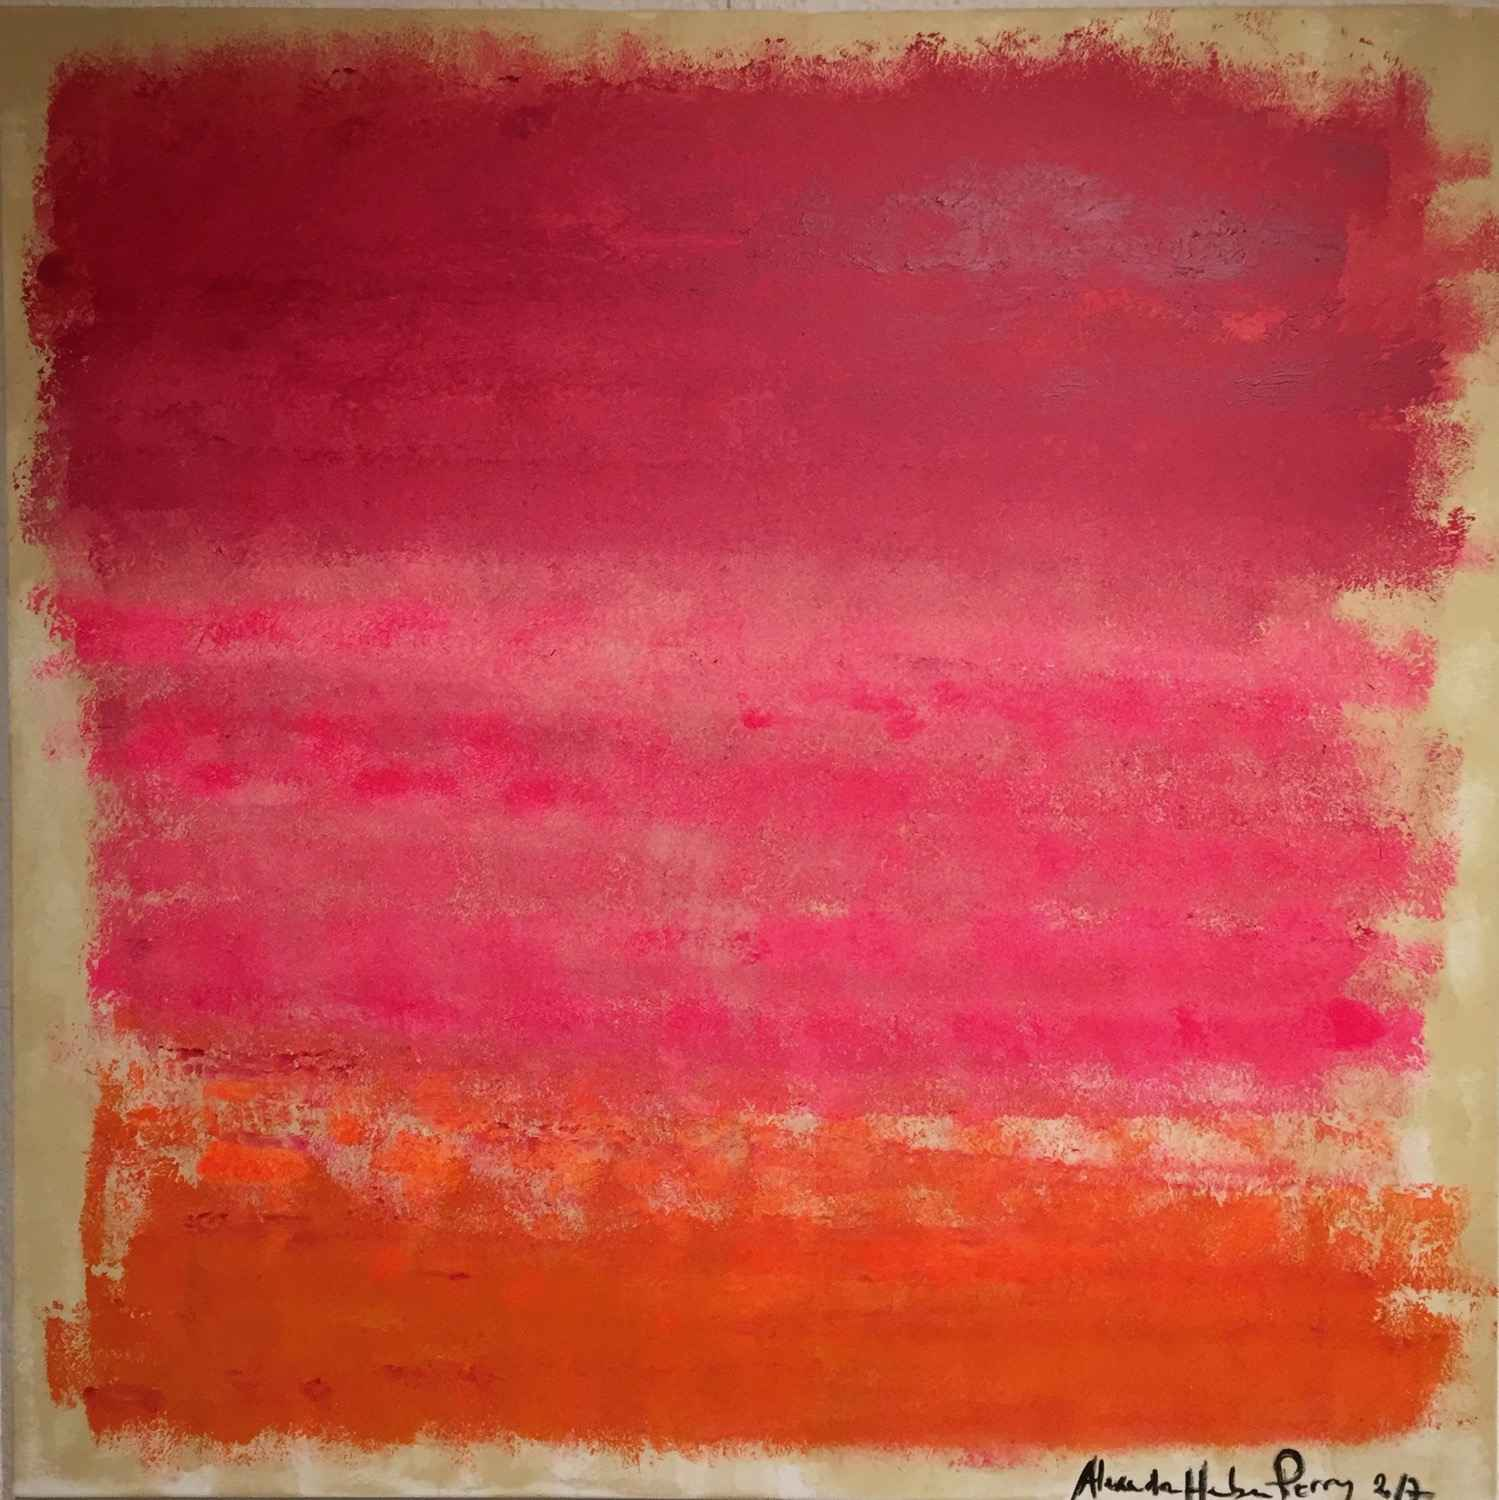 Fiery Pink 1 by  Alexandra HEUMBER PERRY - Masterpiece Online